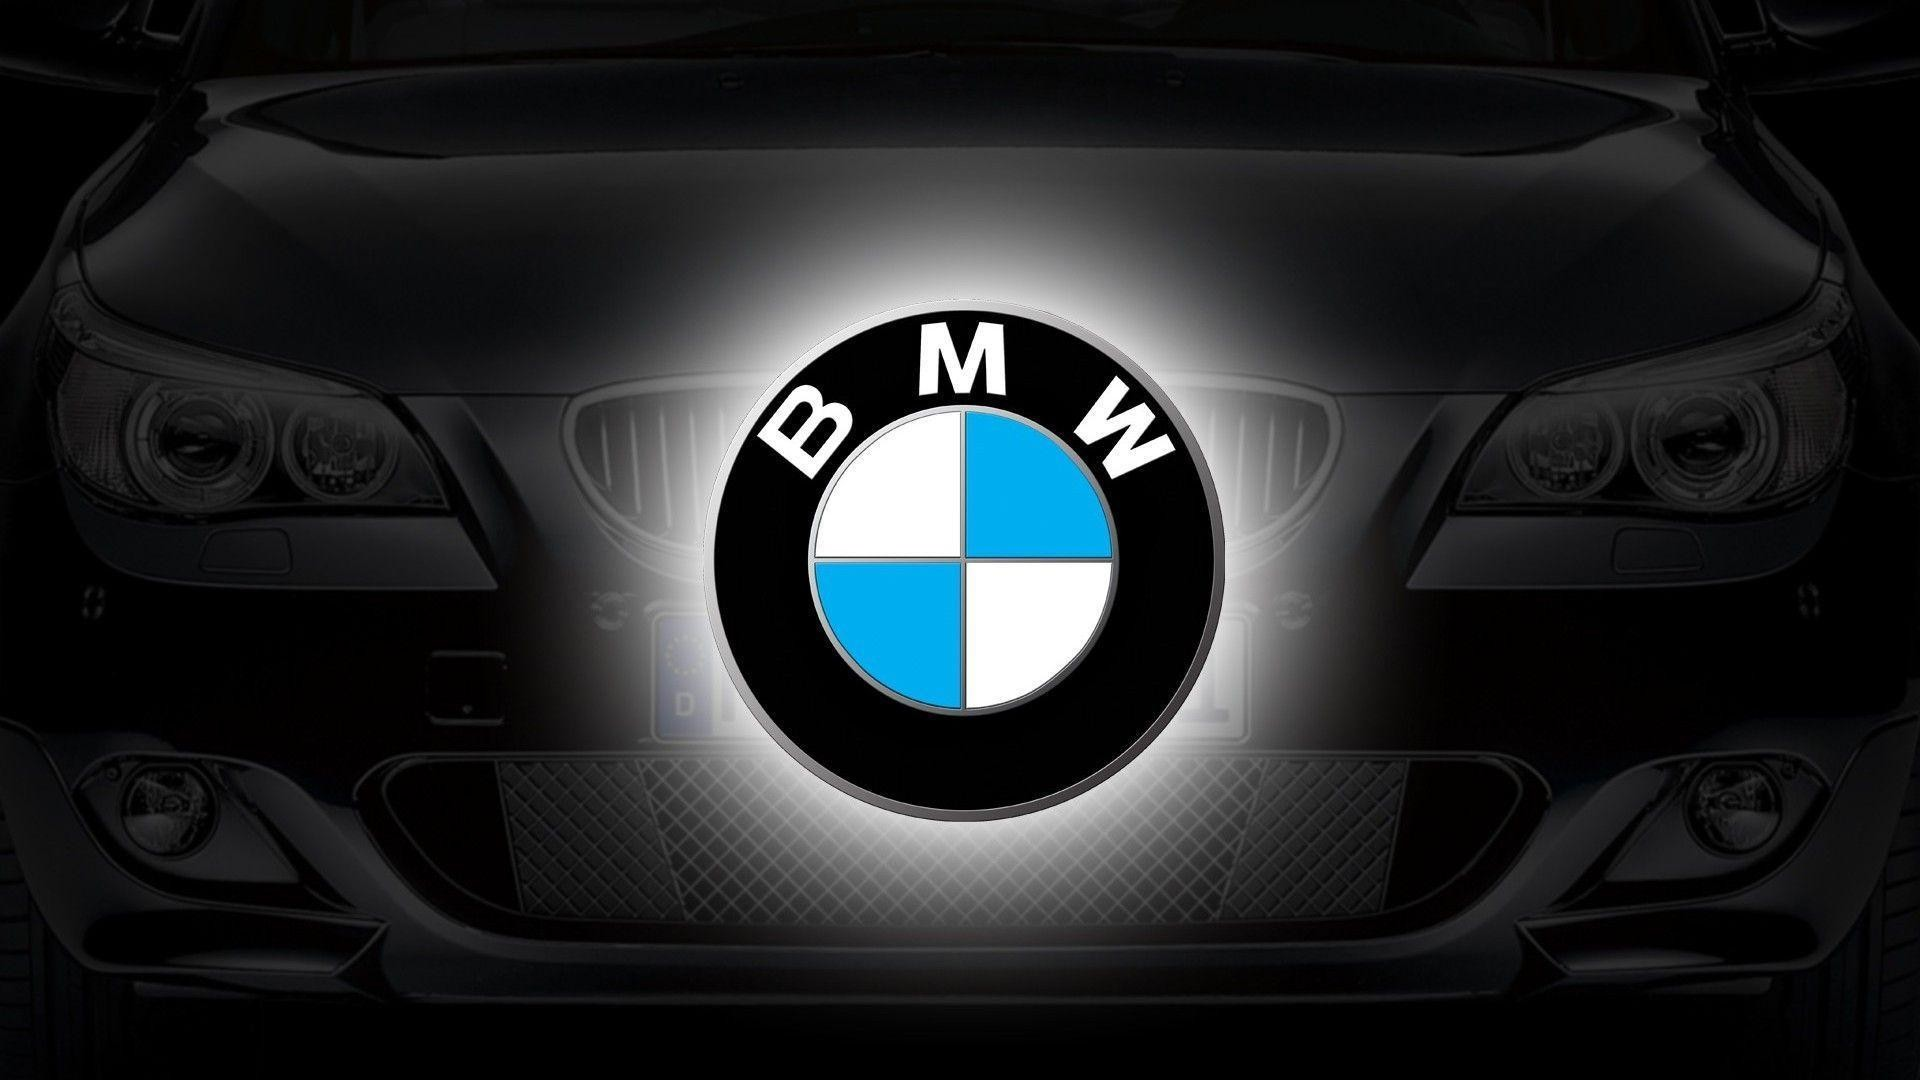 1920x1080 Best BMW Wallpapers For Desktop & Tablets in HD For Download